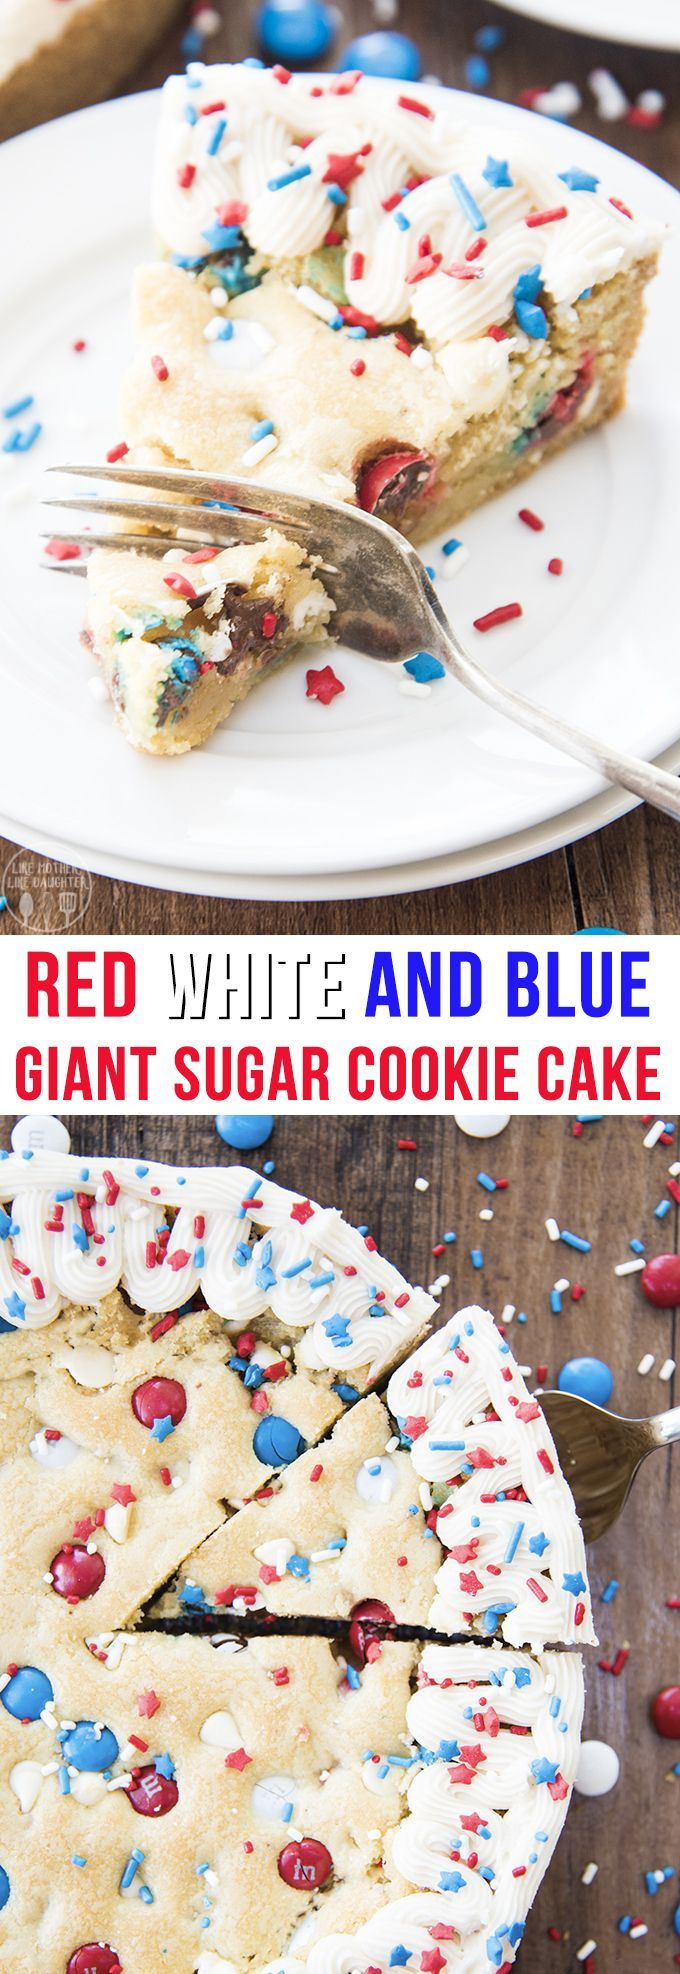 This giant sugar cookie cake is a perfect red, white and blue, patriotic dessert for Memorial Day or the 4th of July! It's loaded with red, white, and blue M&Ms and white chocolate chips and topped with a simple buttercream and fun sprinkles for the perfect summer dessert! giant sugar cookie cake is a perfect red, white and blue, patriotic dessert for Memorial Day or the 4th of July! It's loaded with red, white, and blue M&Ms and white chocolate chips and topped with a simple buttercream and fun sprinkles for the perfect summer dessert!